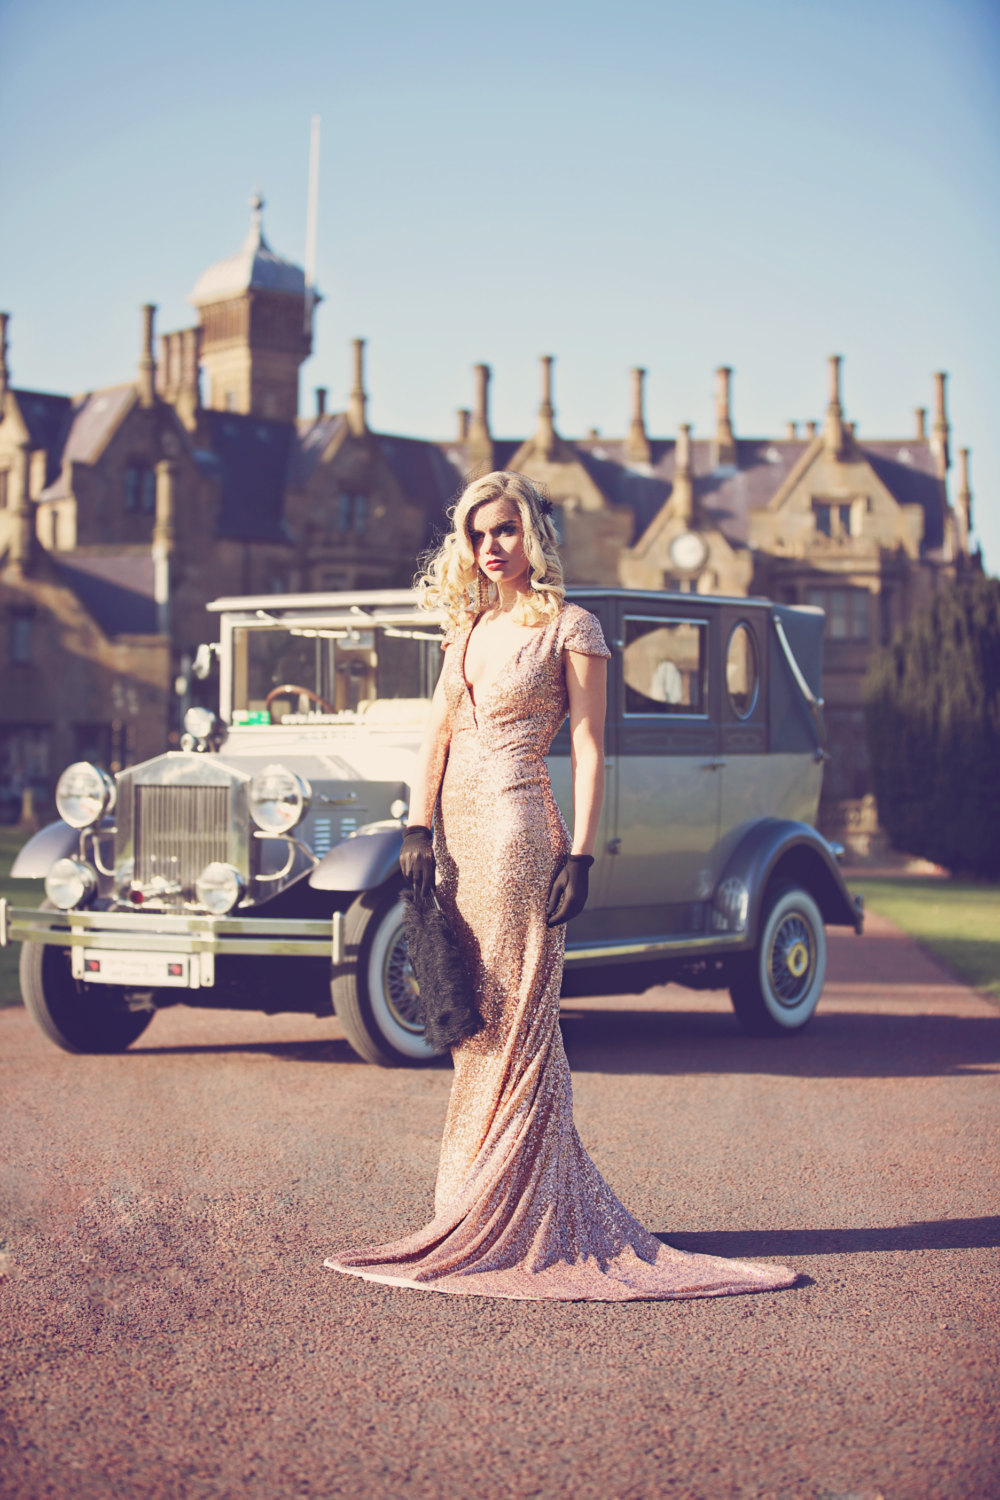 gold sequin wedding dress gatsby glamour gold sequin wedding dress Gold sequin wedding dress gatsby glamour